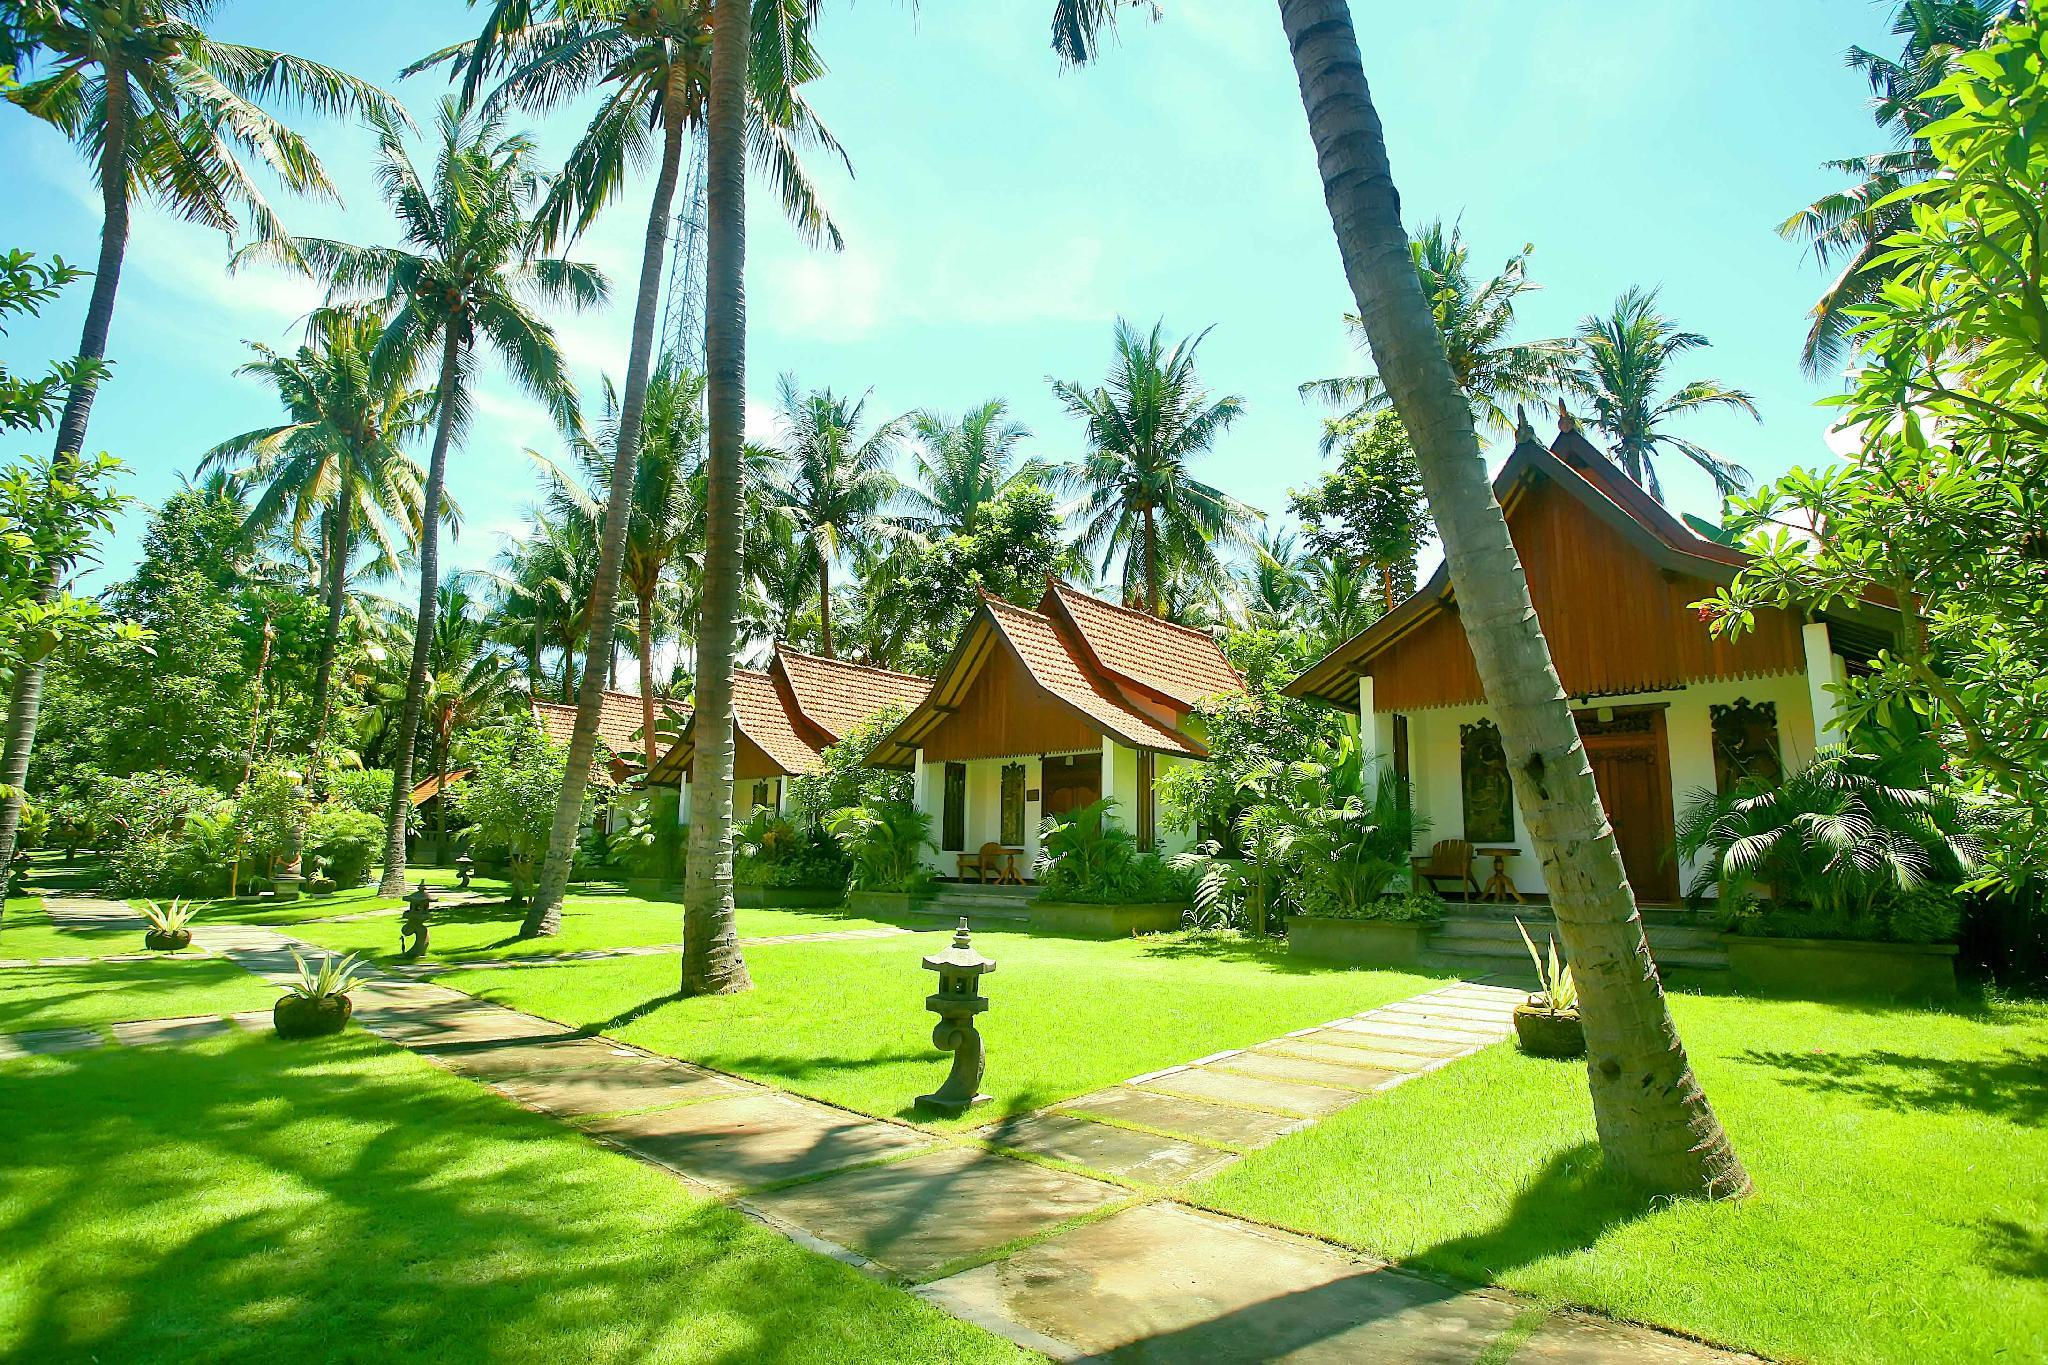 Dewantara Boutique villa Resort by Bali Family Hospitality, Buleleng